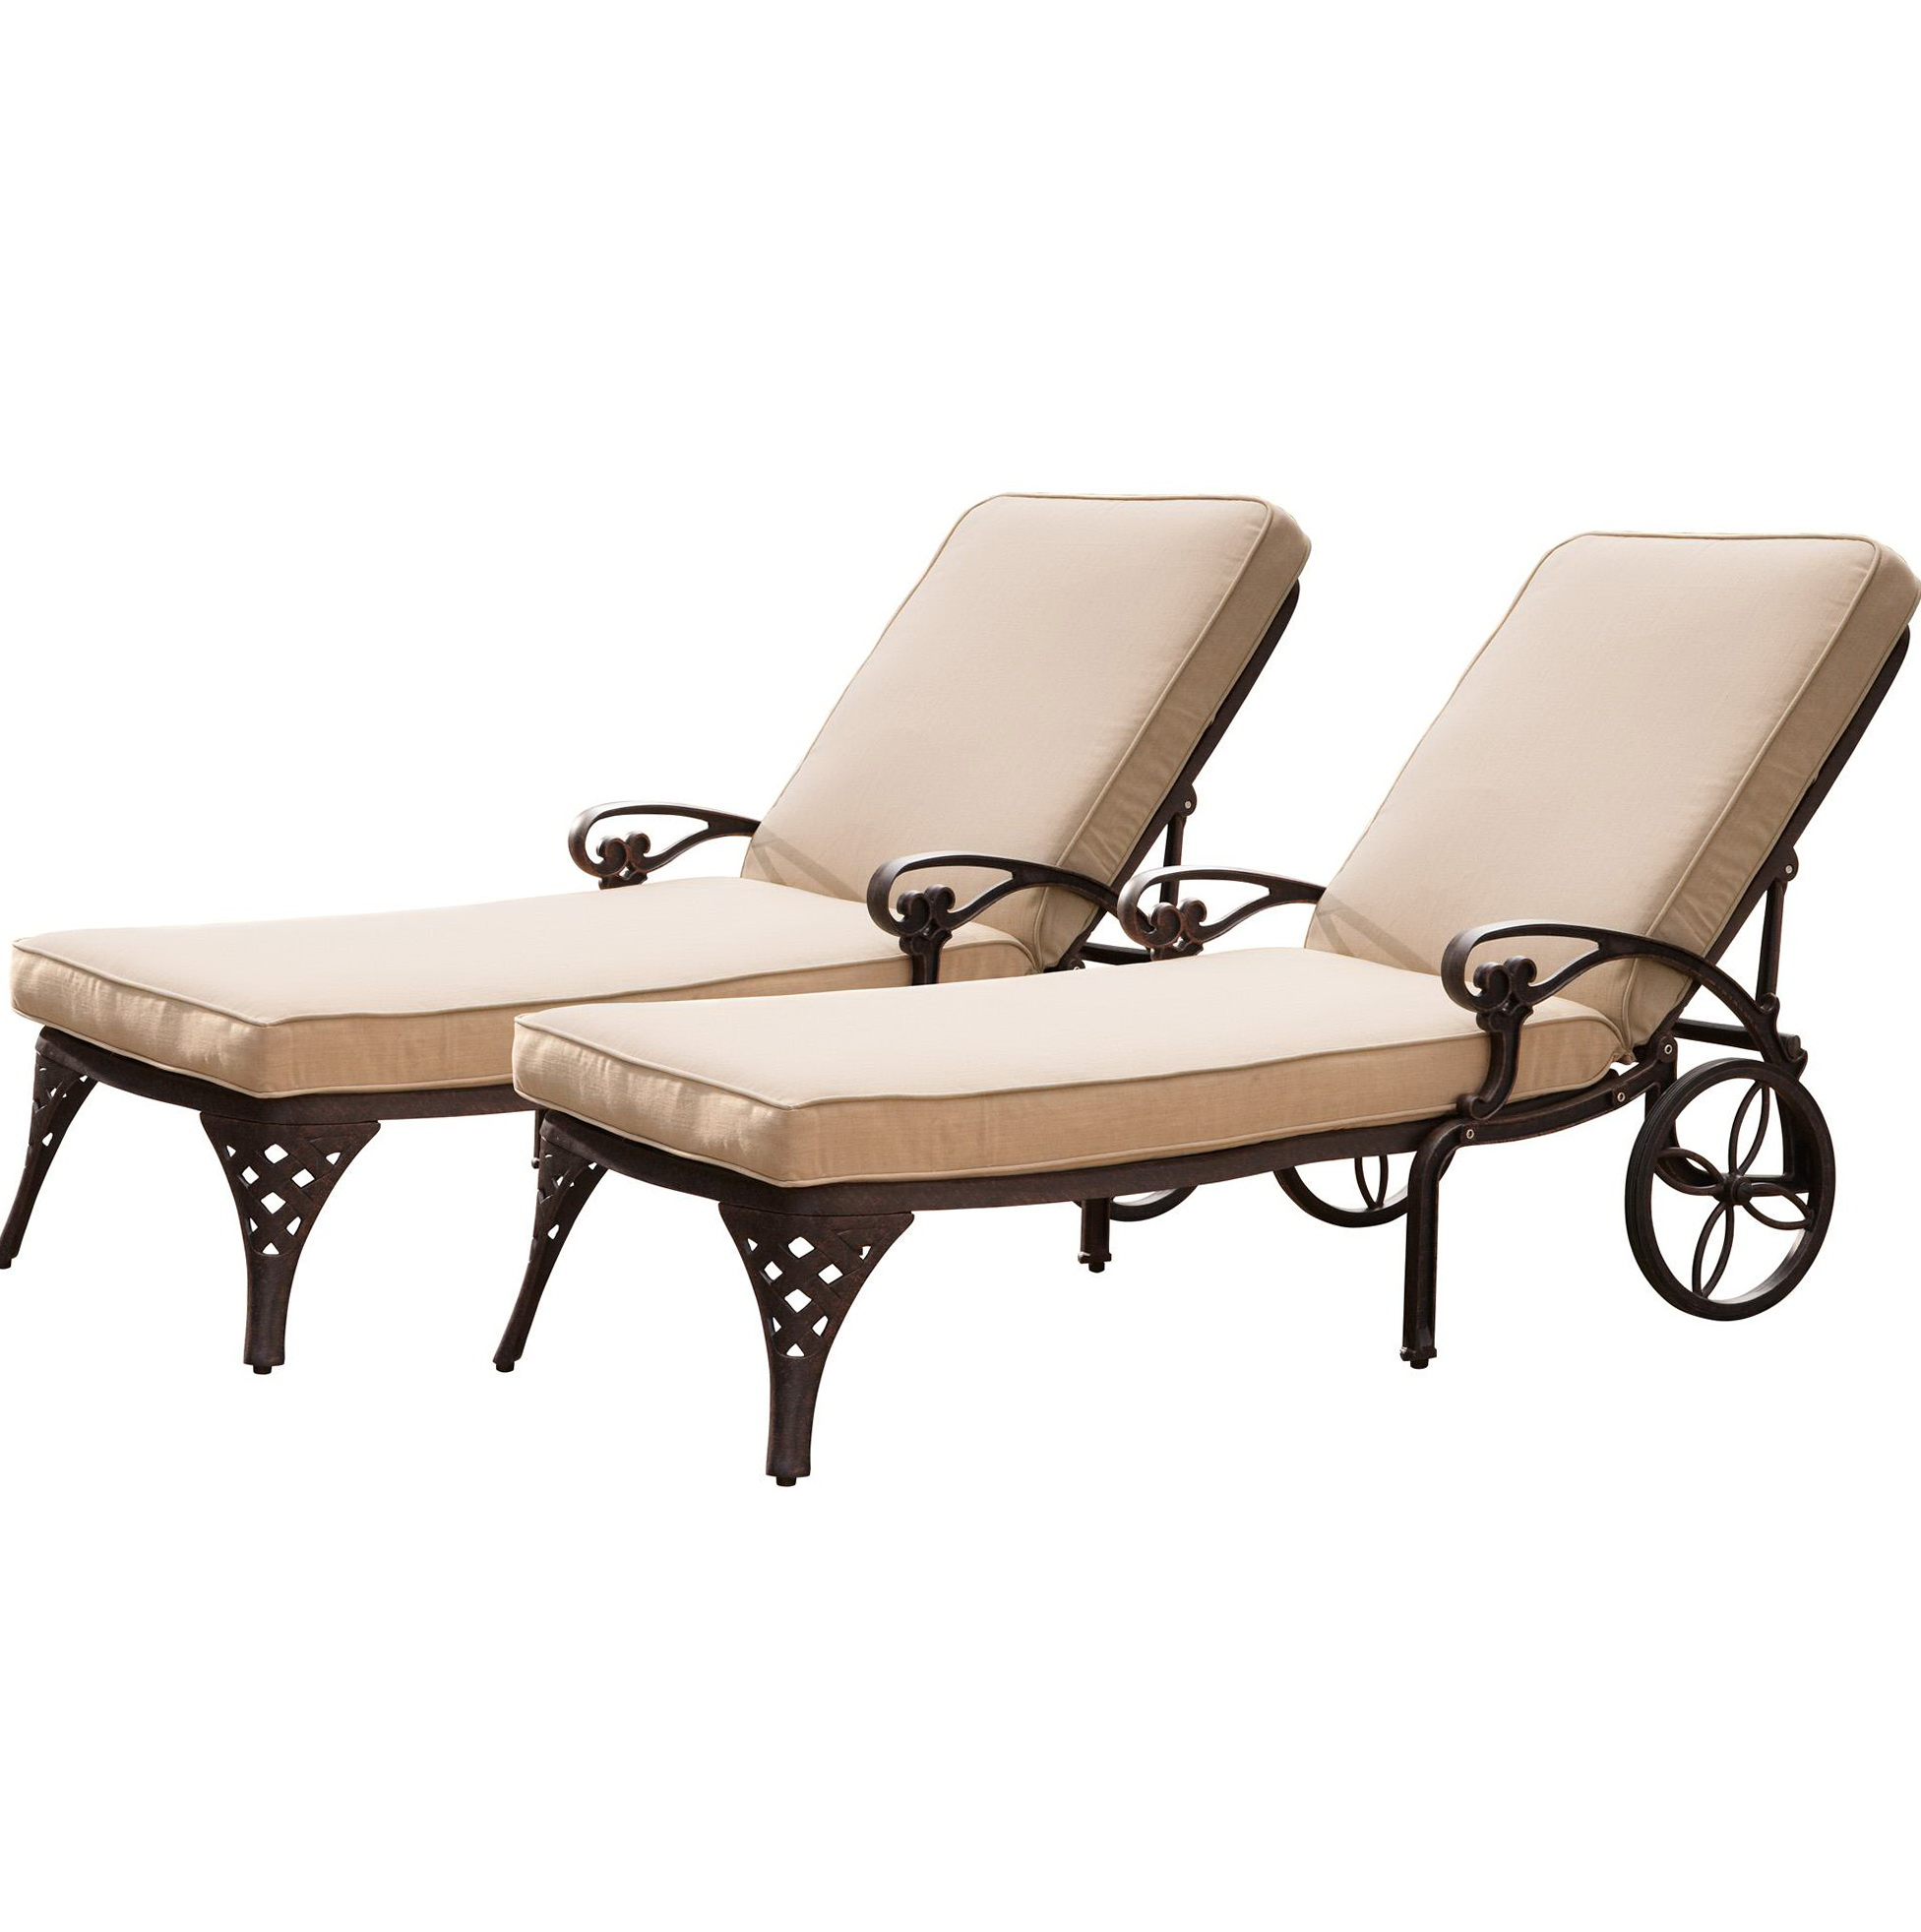 Outdoor Chaise Lounge Chairs For Sale